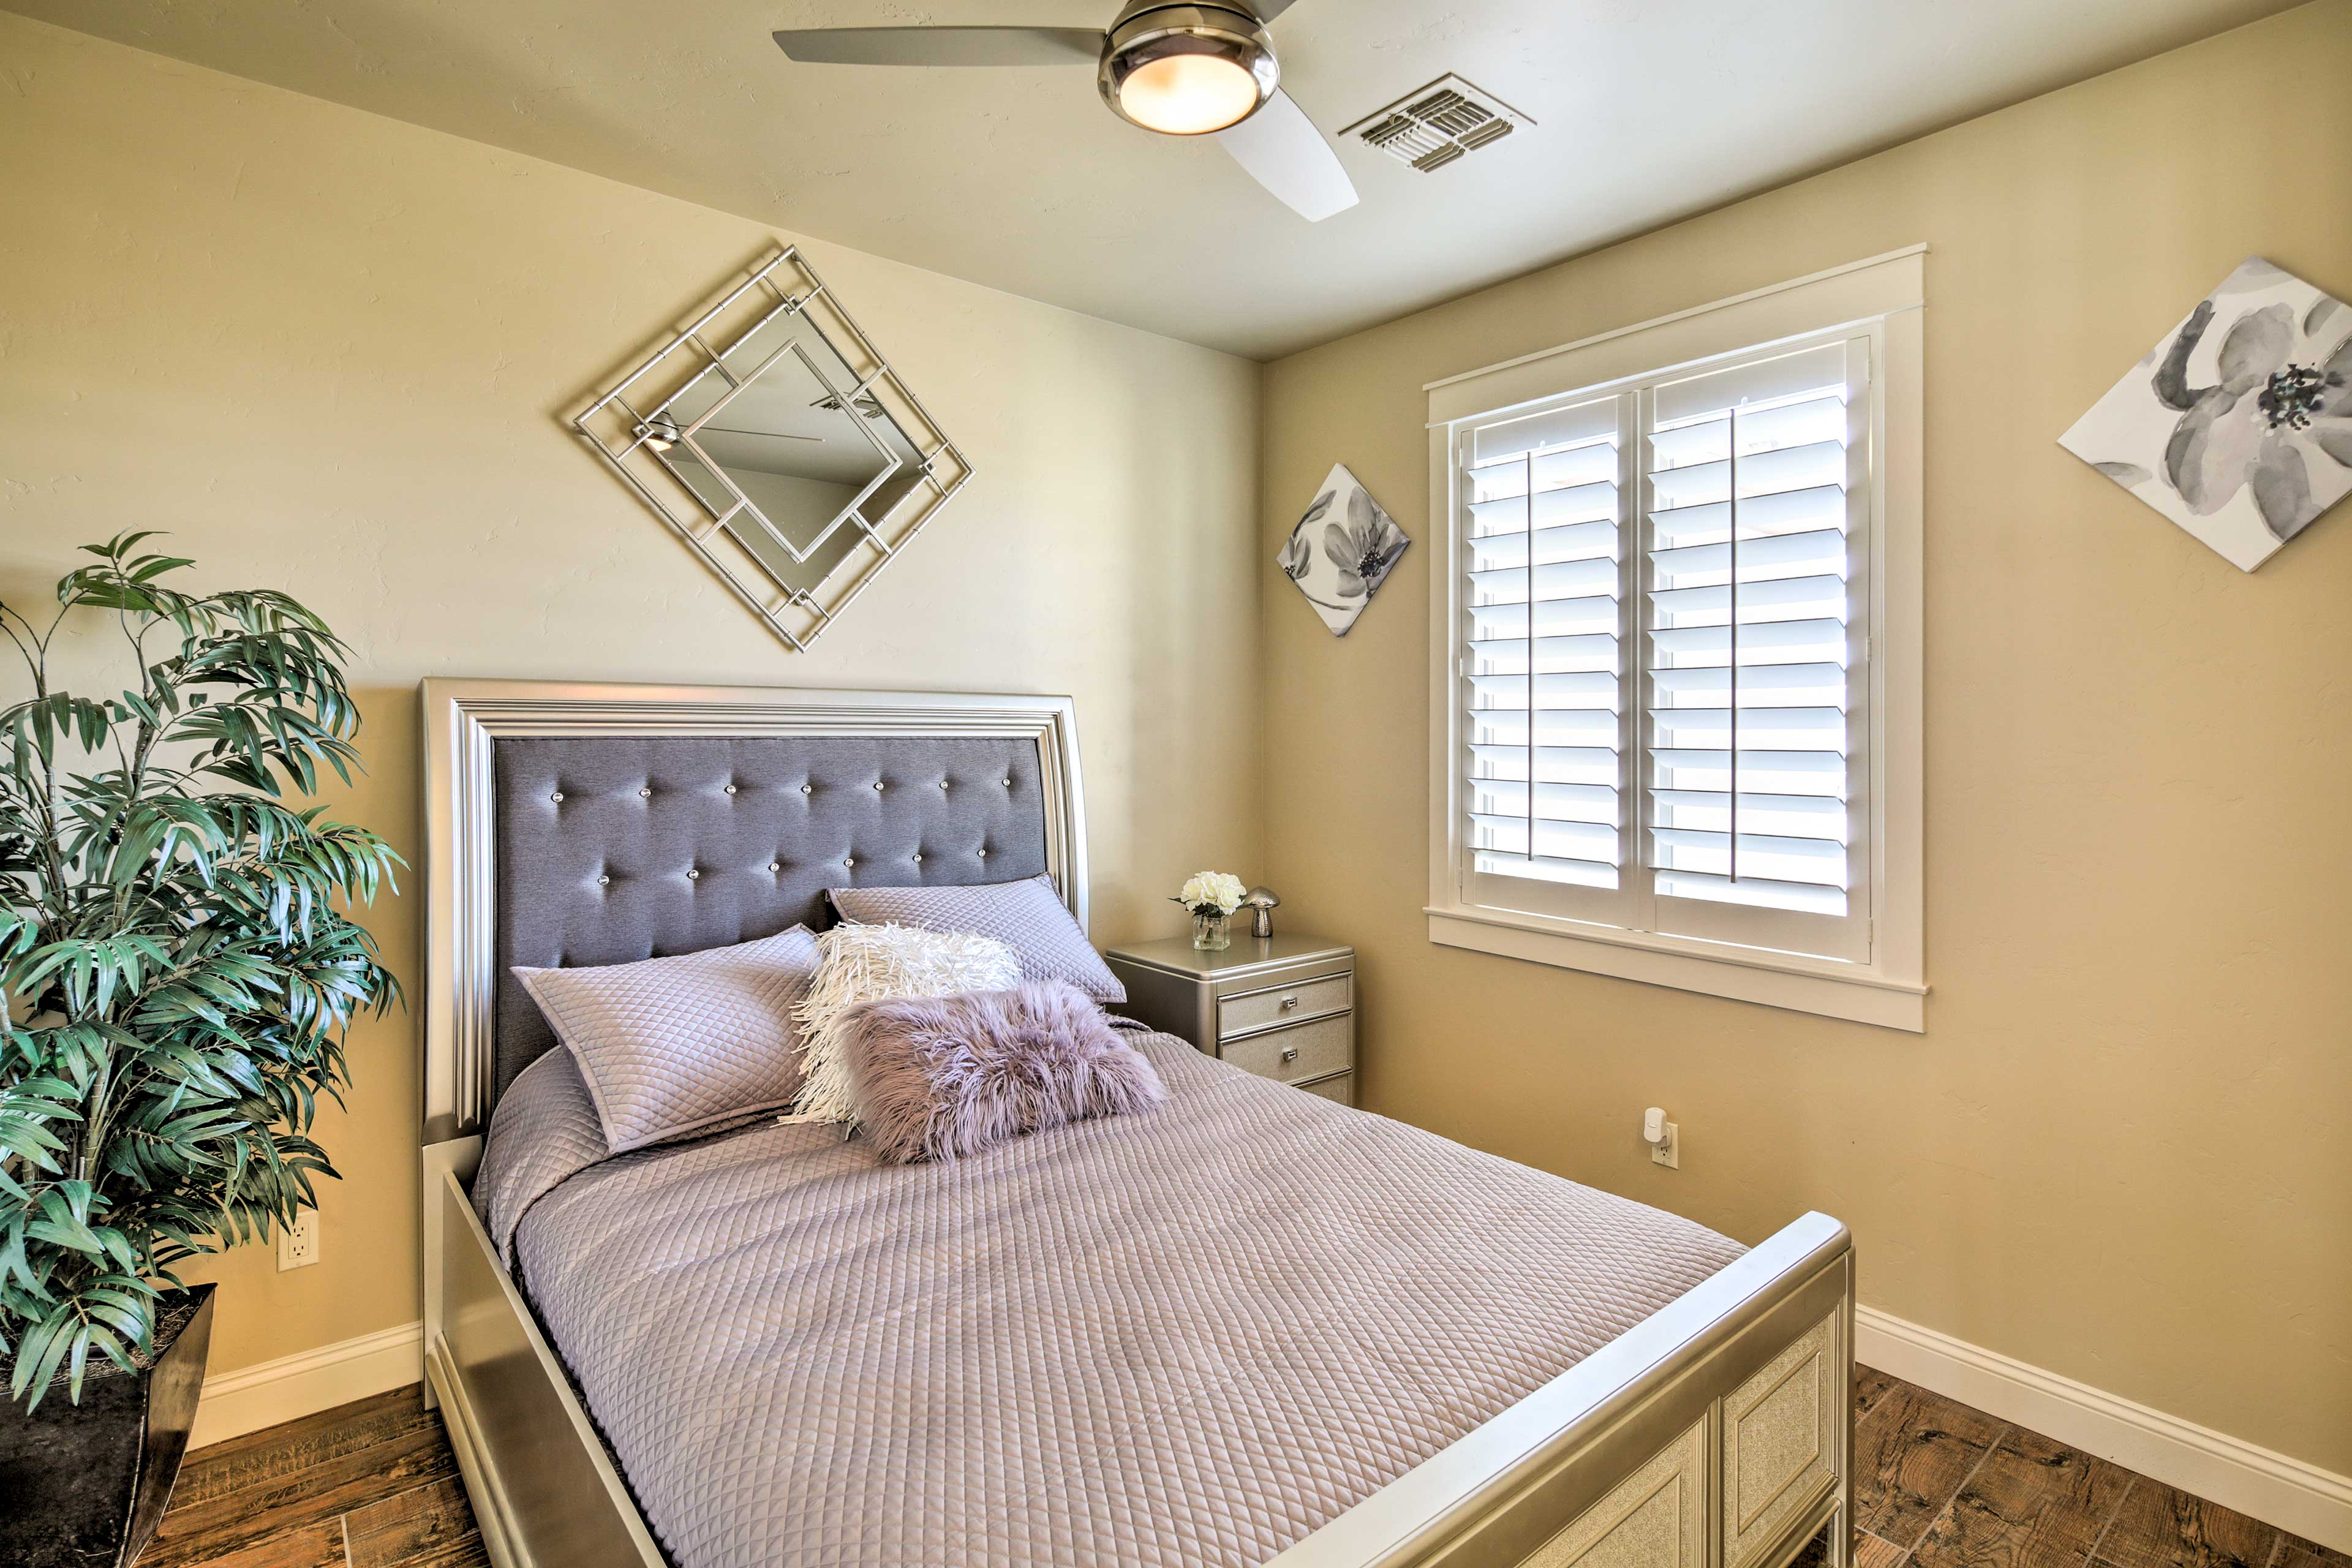 Those staying in bedroom 3 will be gifted to a cozy queen bed.